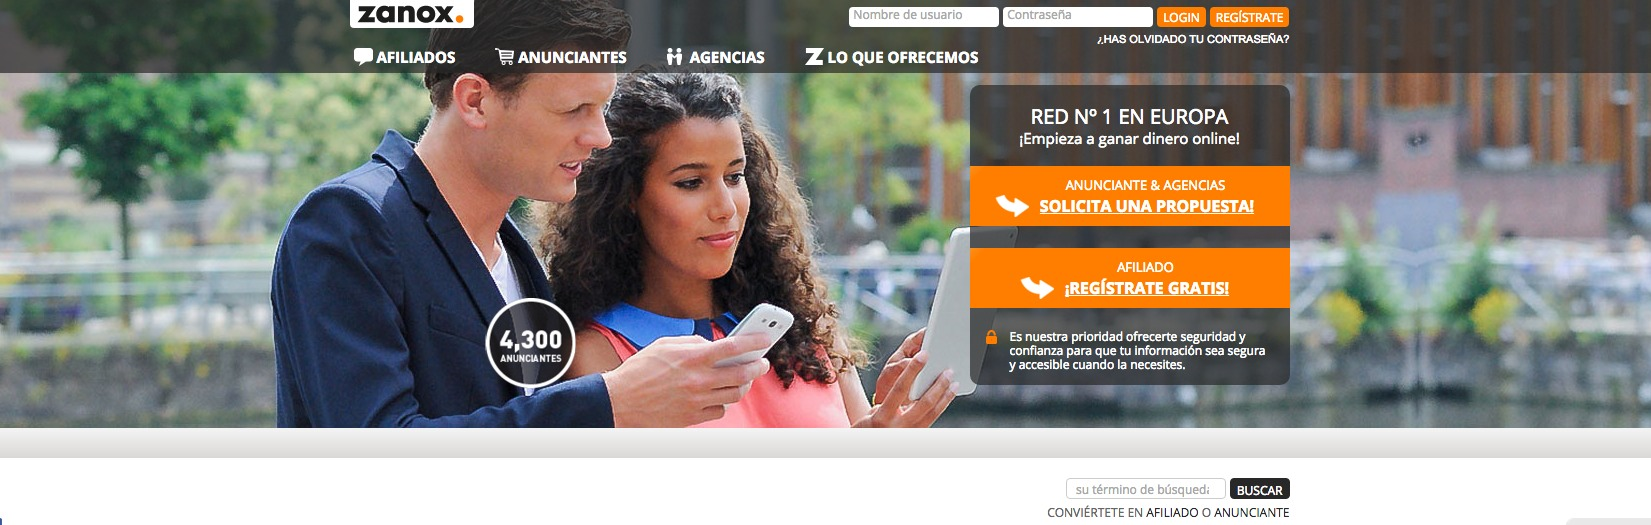 plataformas de marketing de afiliación: Zanox